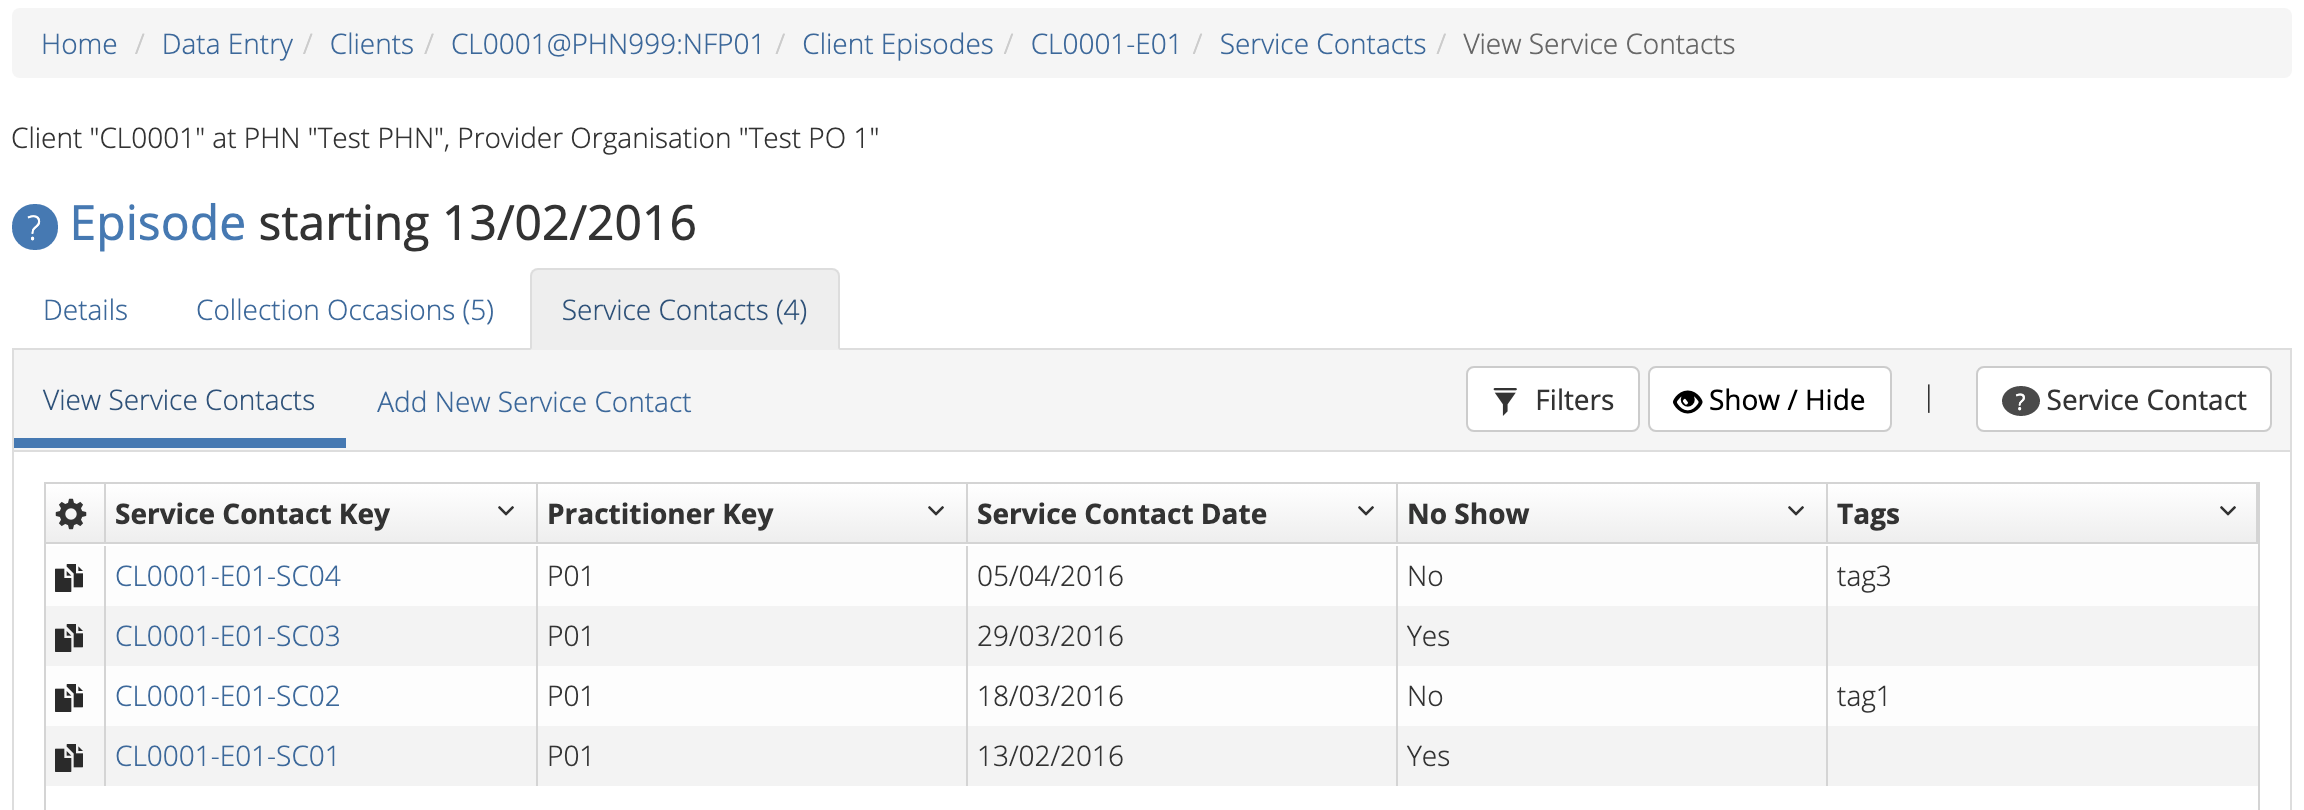 Client Episode Service Contacts Table View